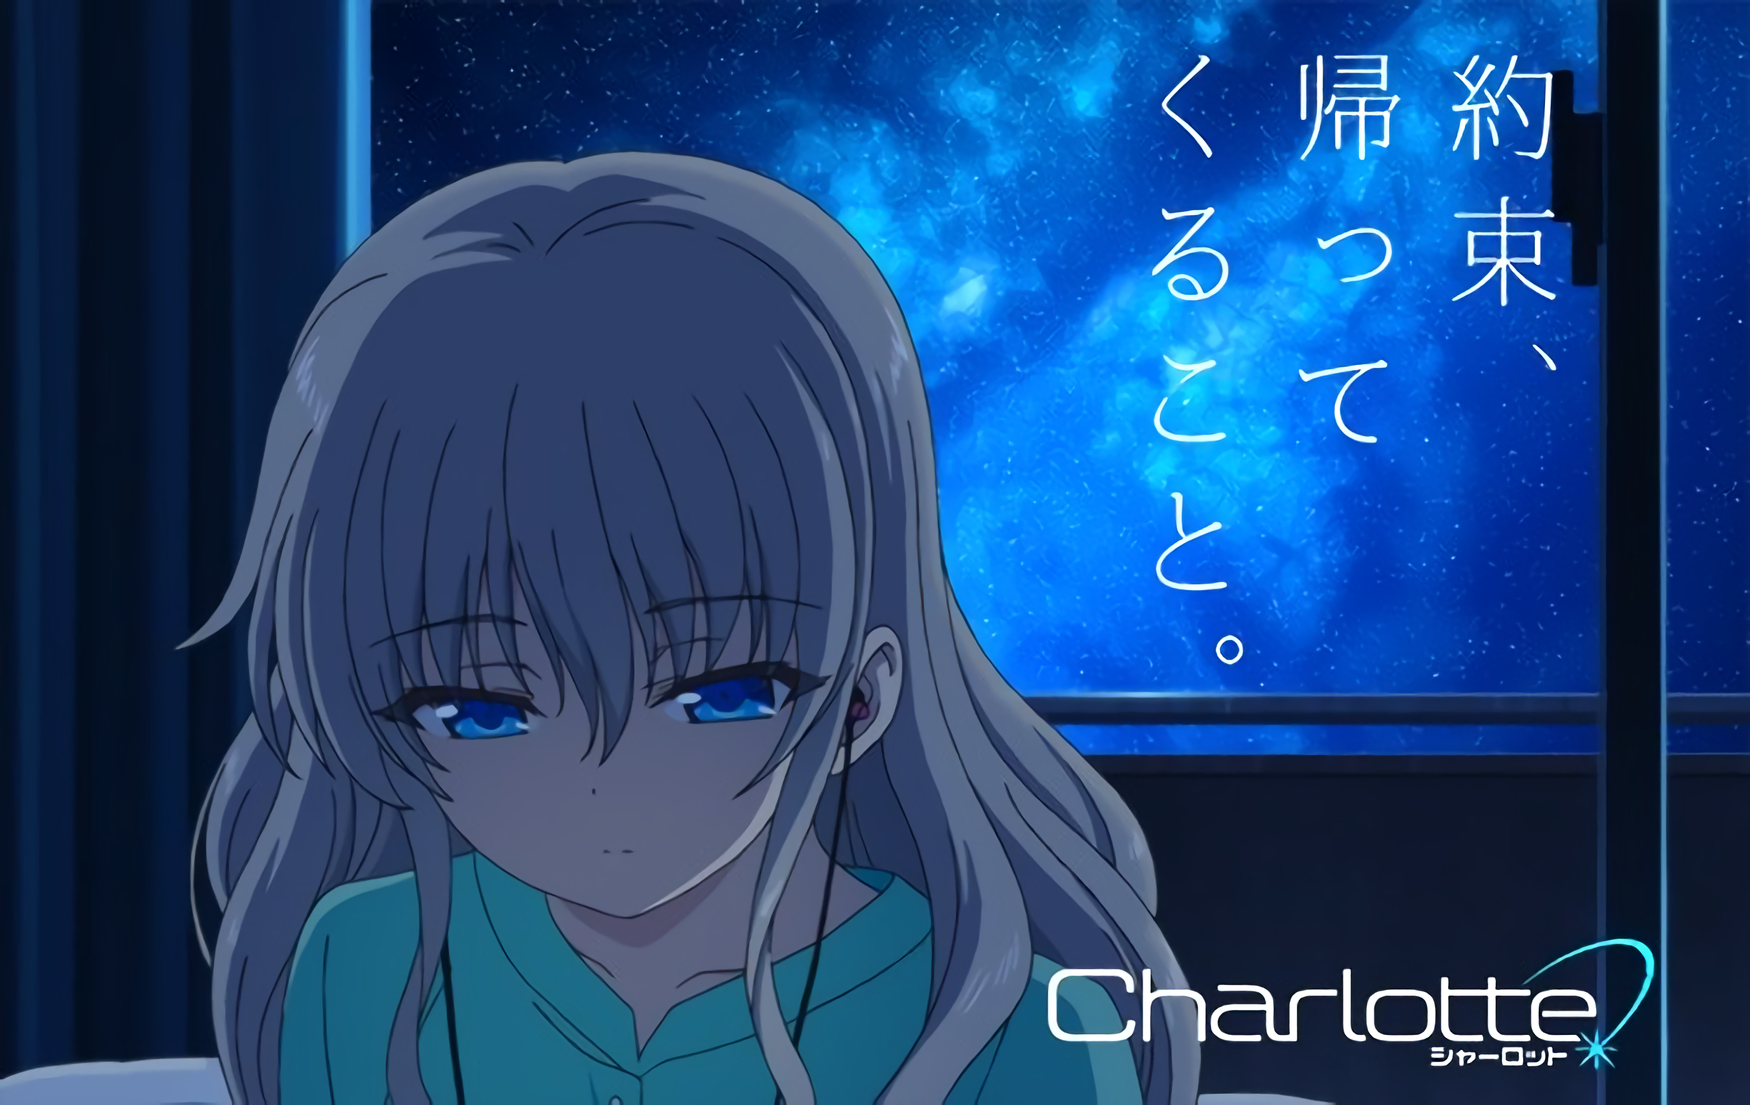 Nao Tomori in hospital Wallpaper and Background Image ...